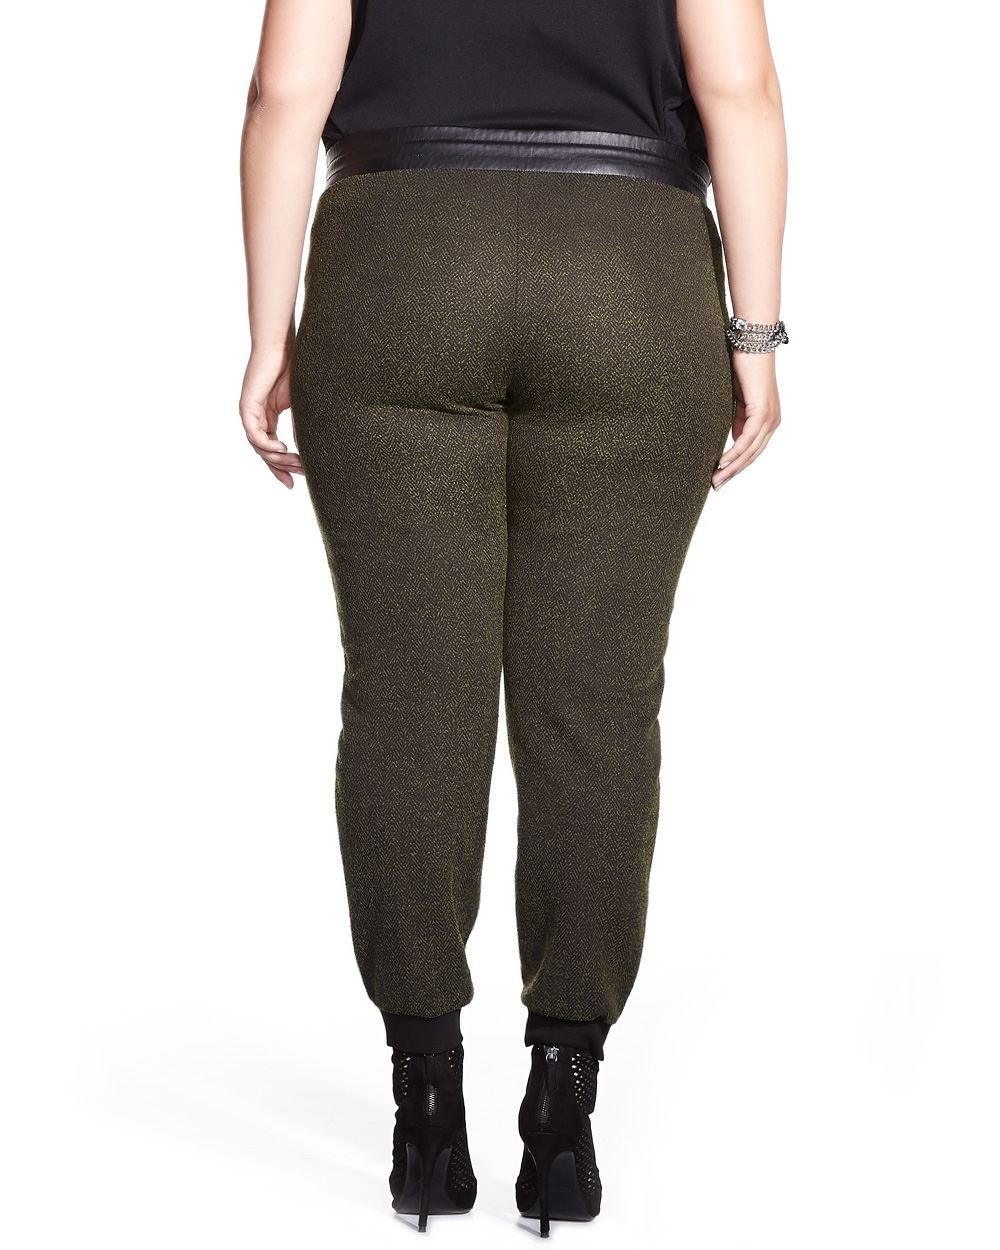 plus size jogger pants photo - 2